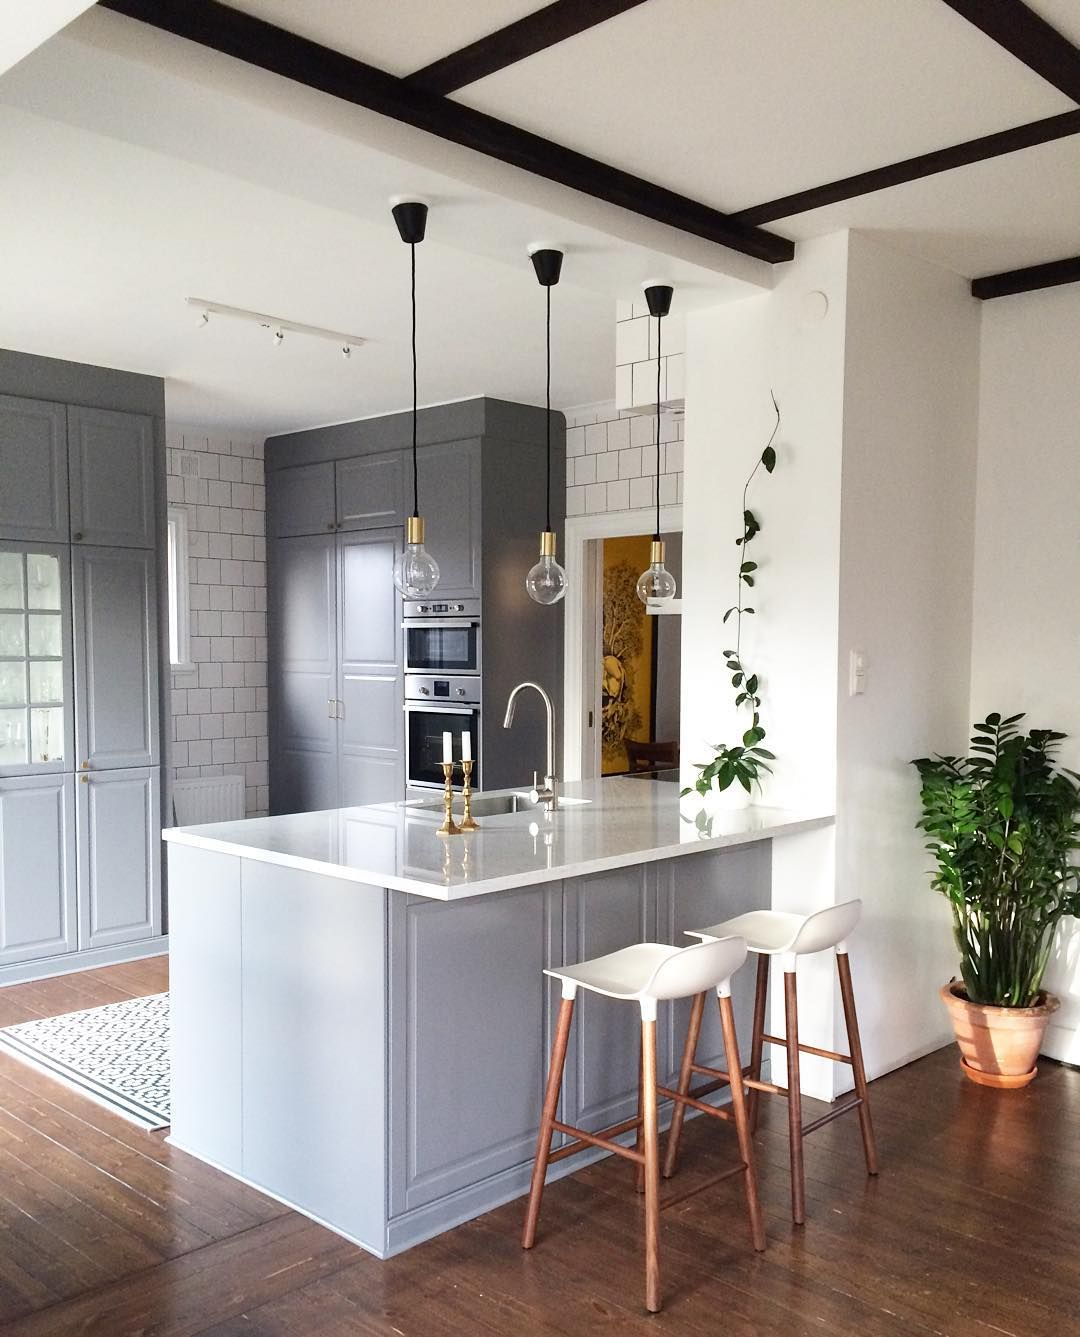 Ikea Kitchen Bodbyn Grey: Regardez Cette Photo Instagram De @huehuynhillustration